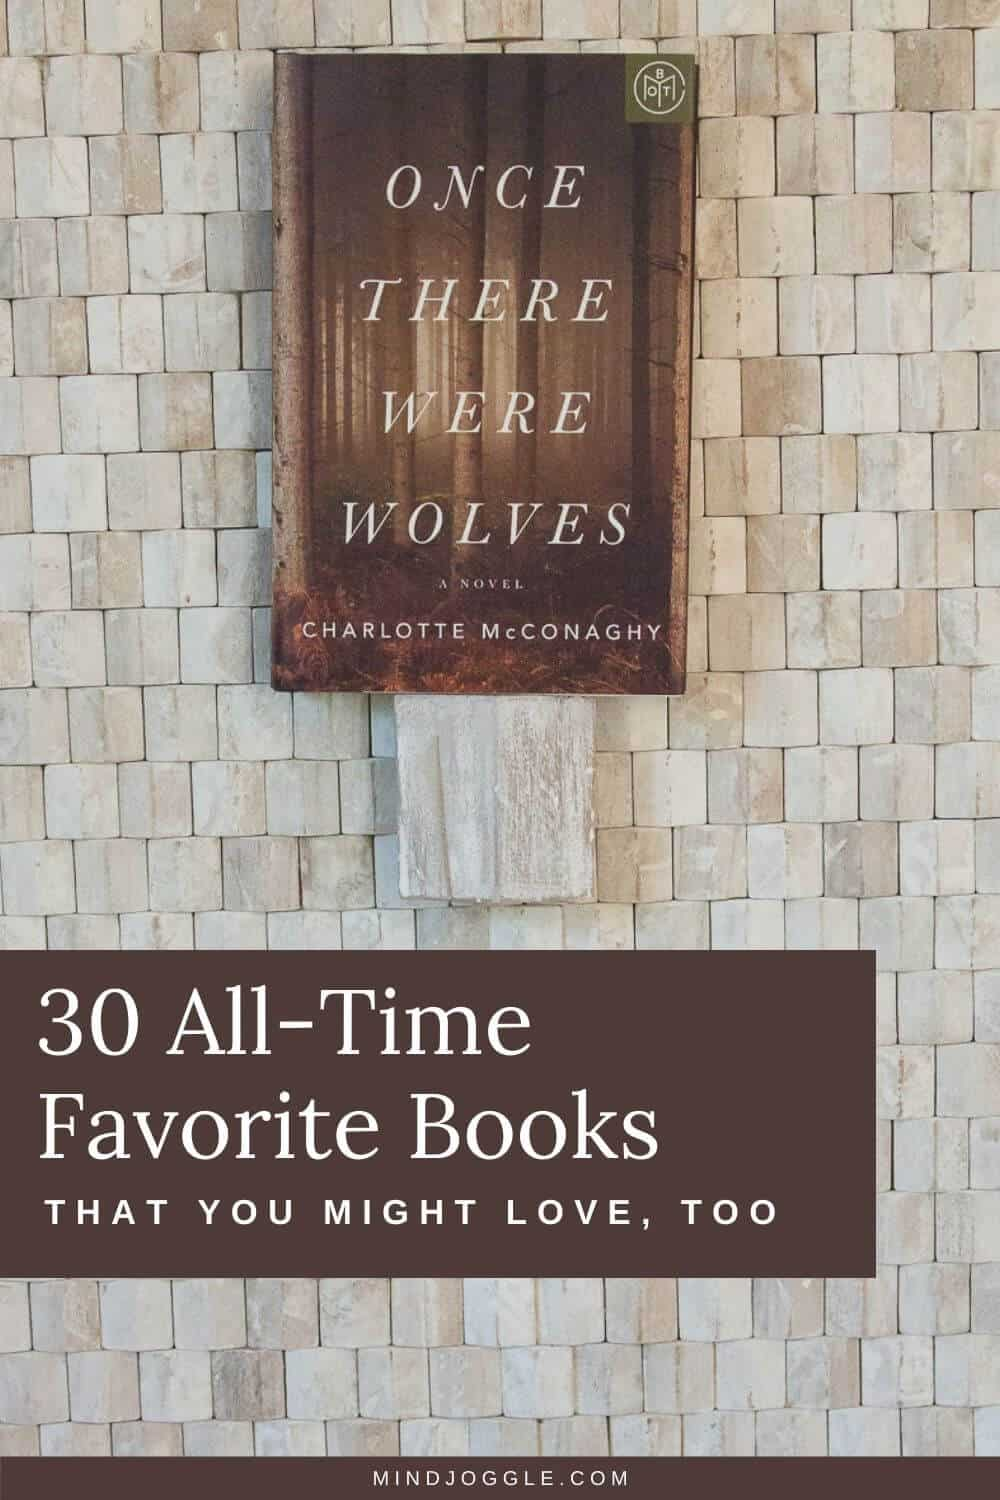 30 All-Time Favorite Books That You Might Love, Too